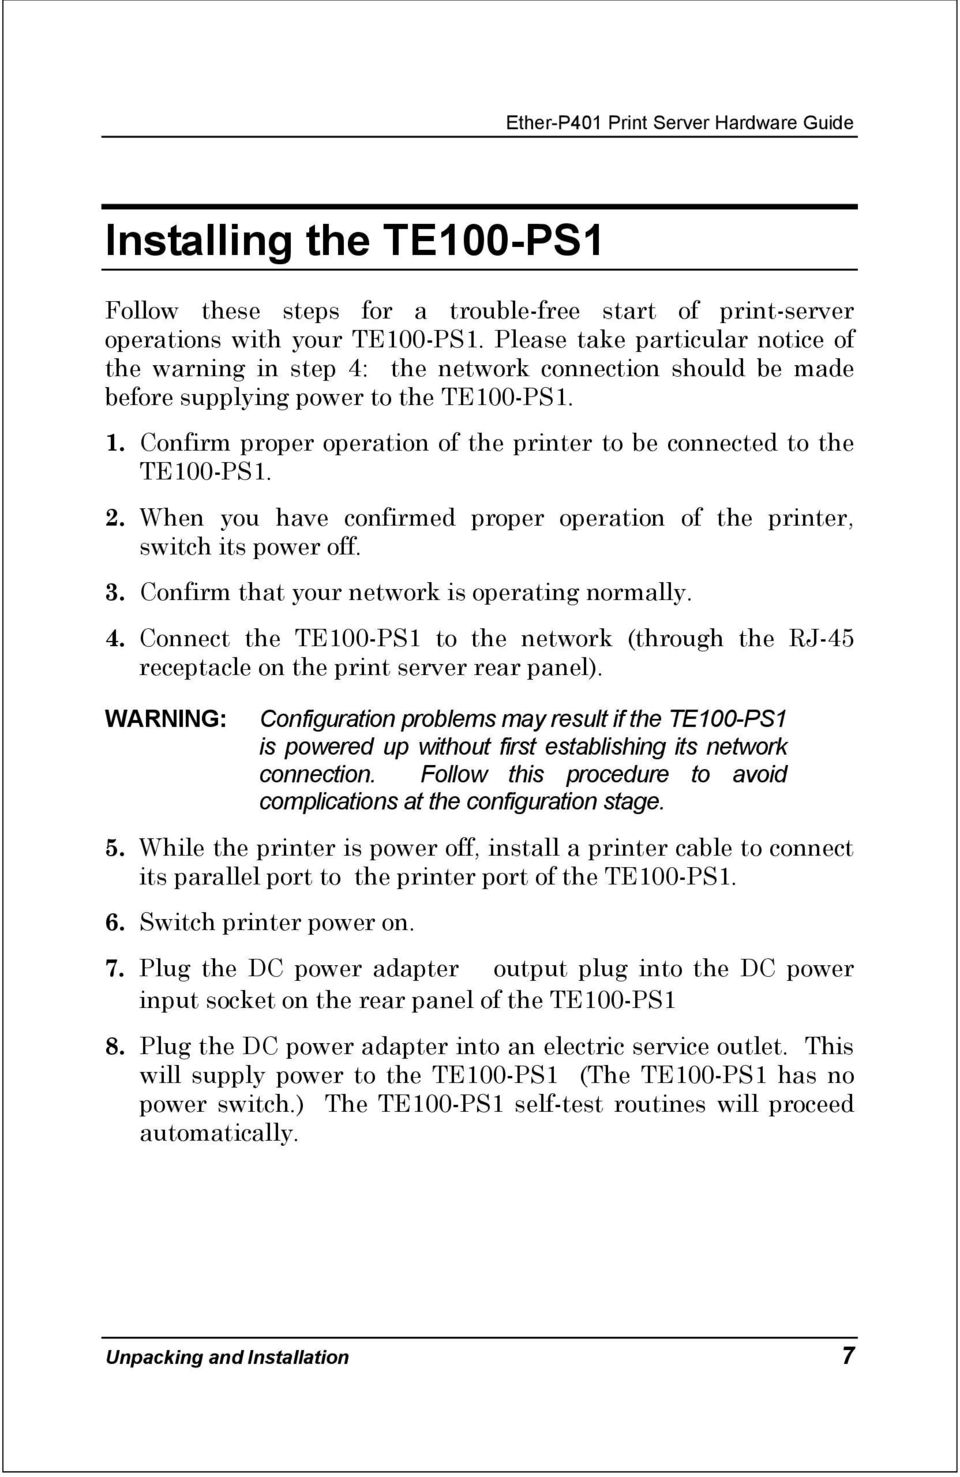 Confirm proper operation of the printer to be connected to the TE100-PS1. 2. When you have confirmed proper operation of the printer, switch its power off. 3.